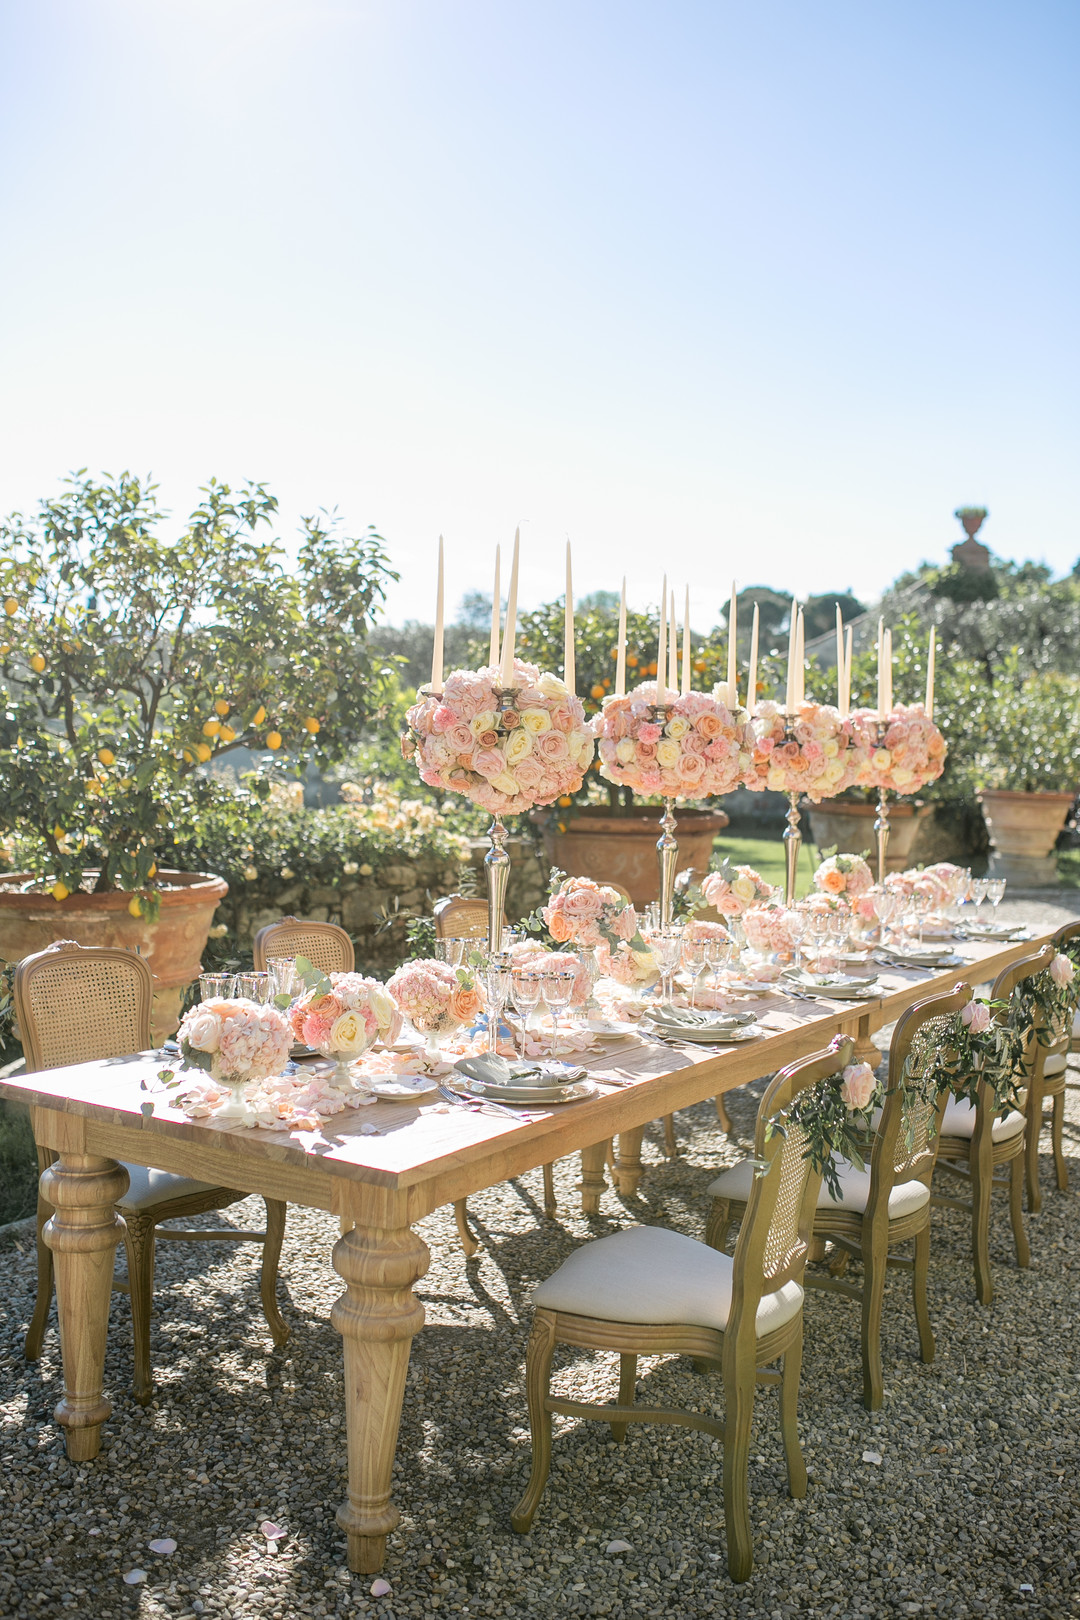 pink, blush, peach and light yellow rose centerpieces with candles